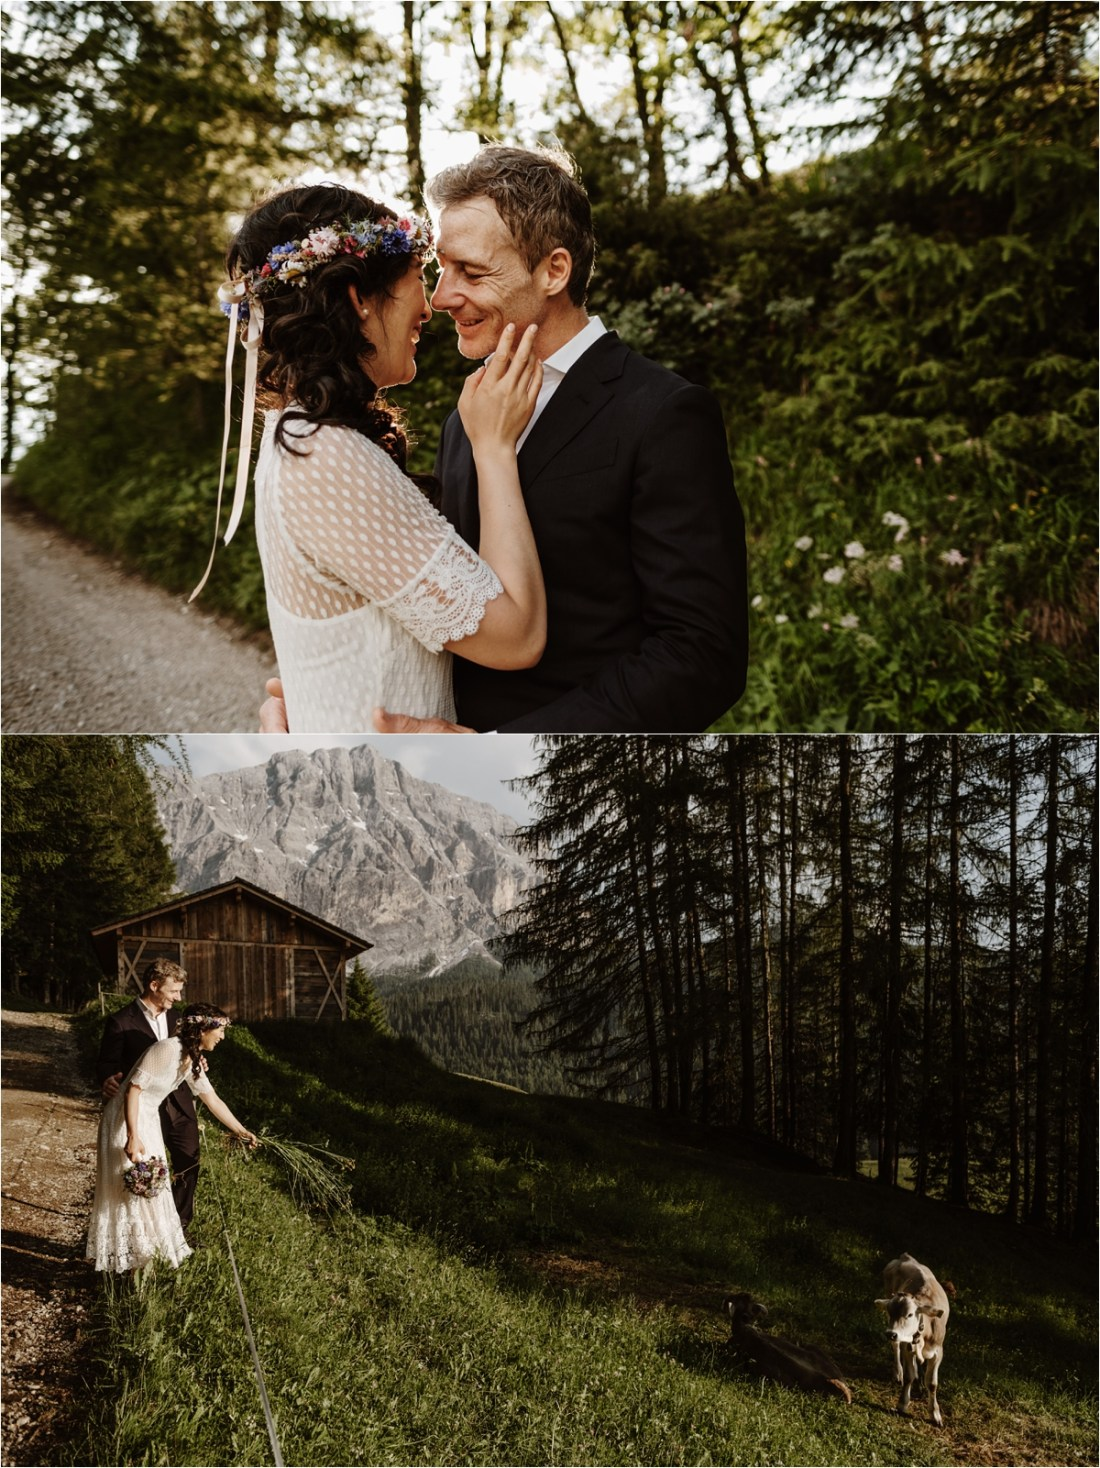 The bride and groom find baby cows in a meadow in the Dolomites. Photo by Wild Connections Photography